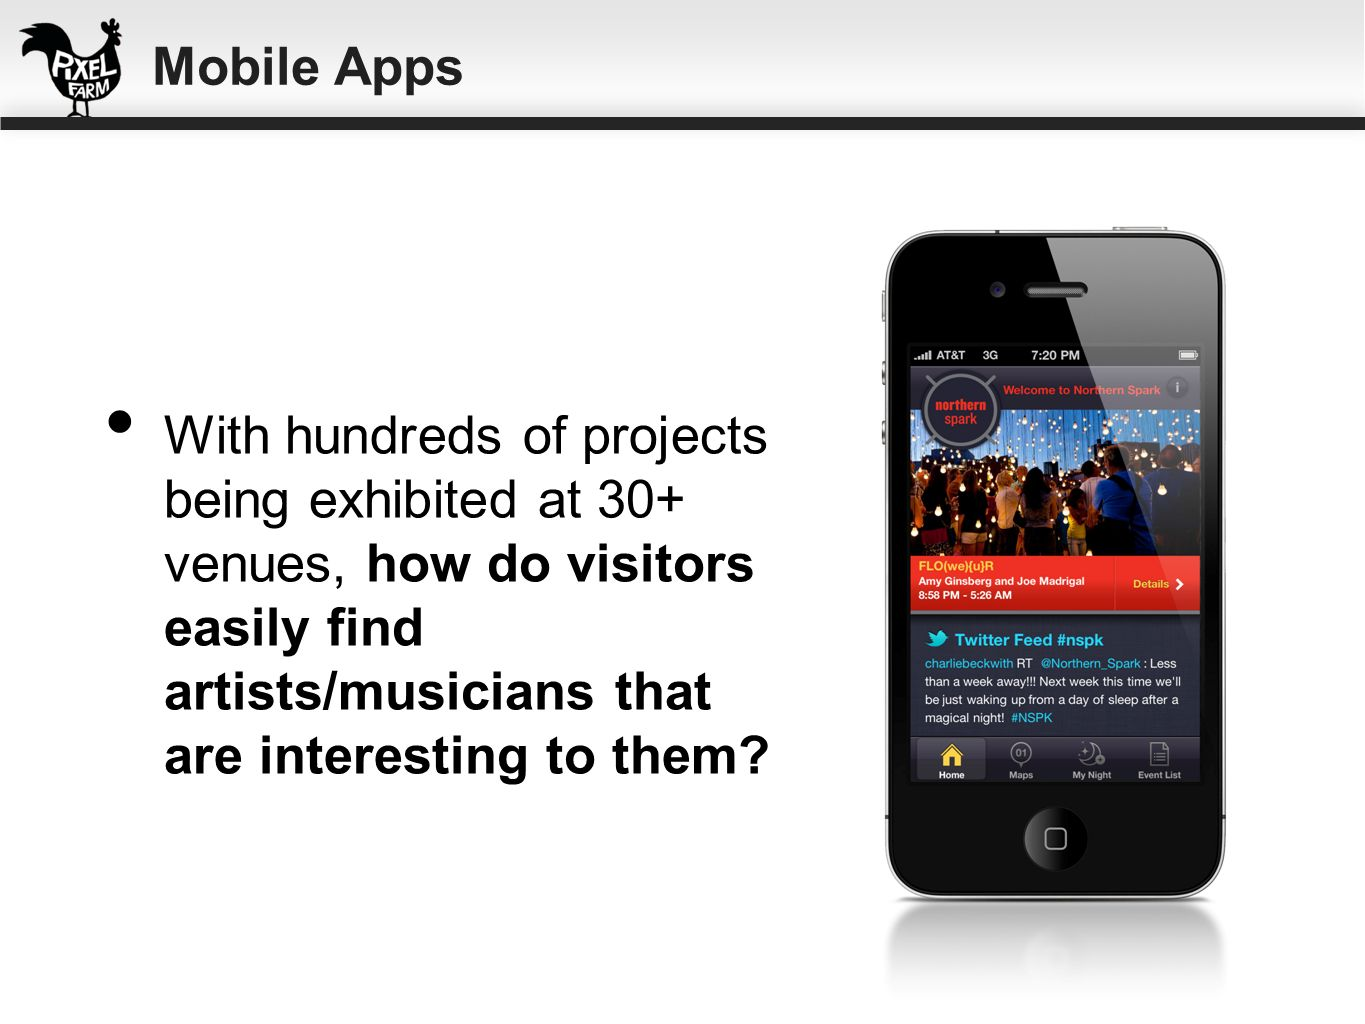 Mobile Apps With hundreds of projects being exhibited at 30+ venues, how do visitors easily find artists/musicians that are interesting to them